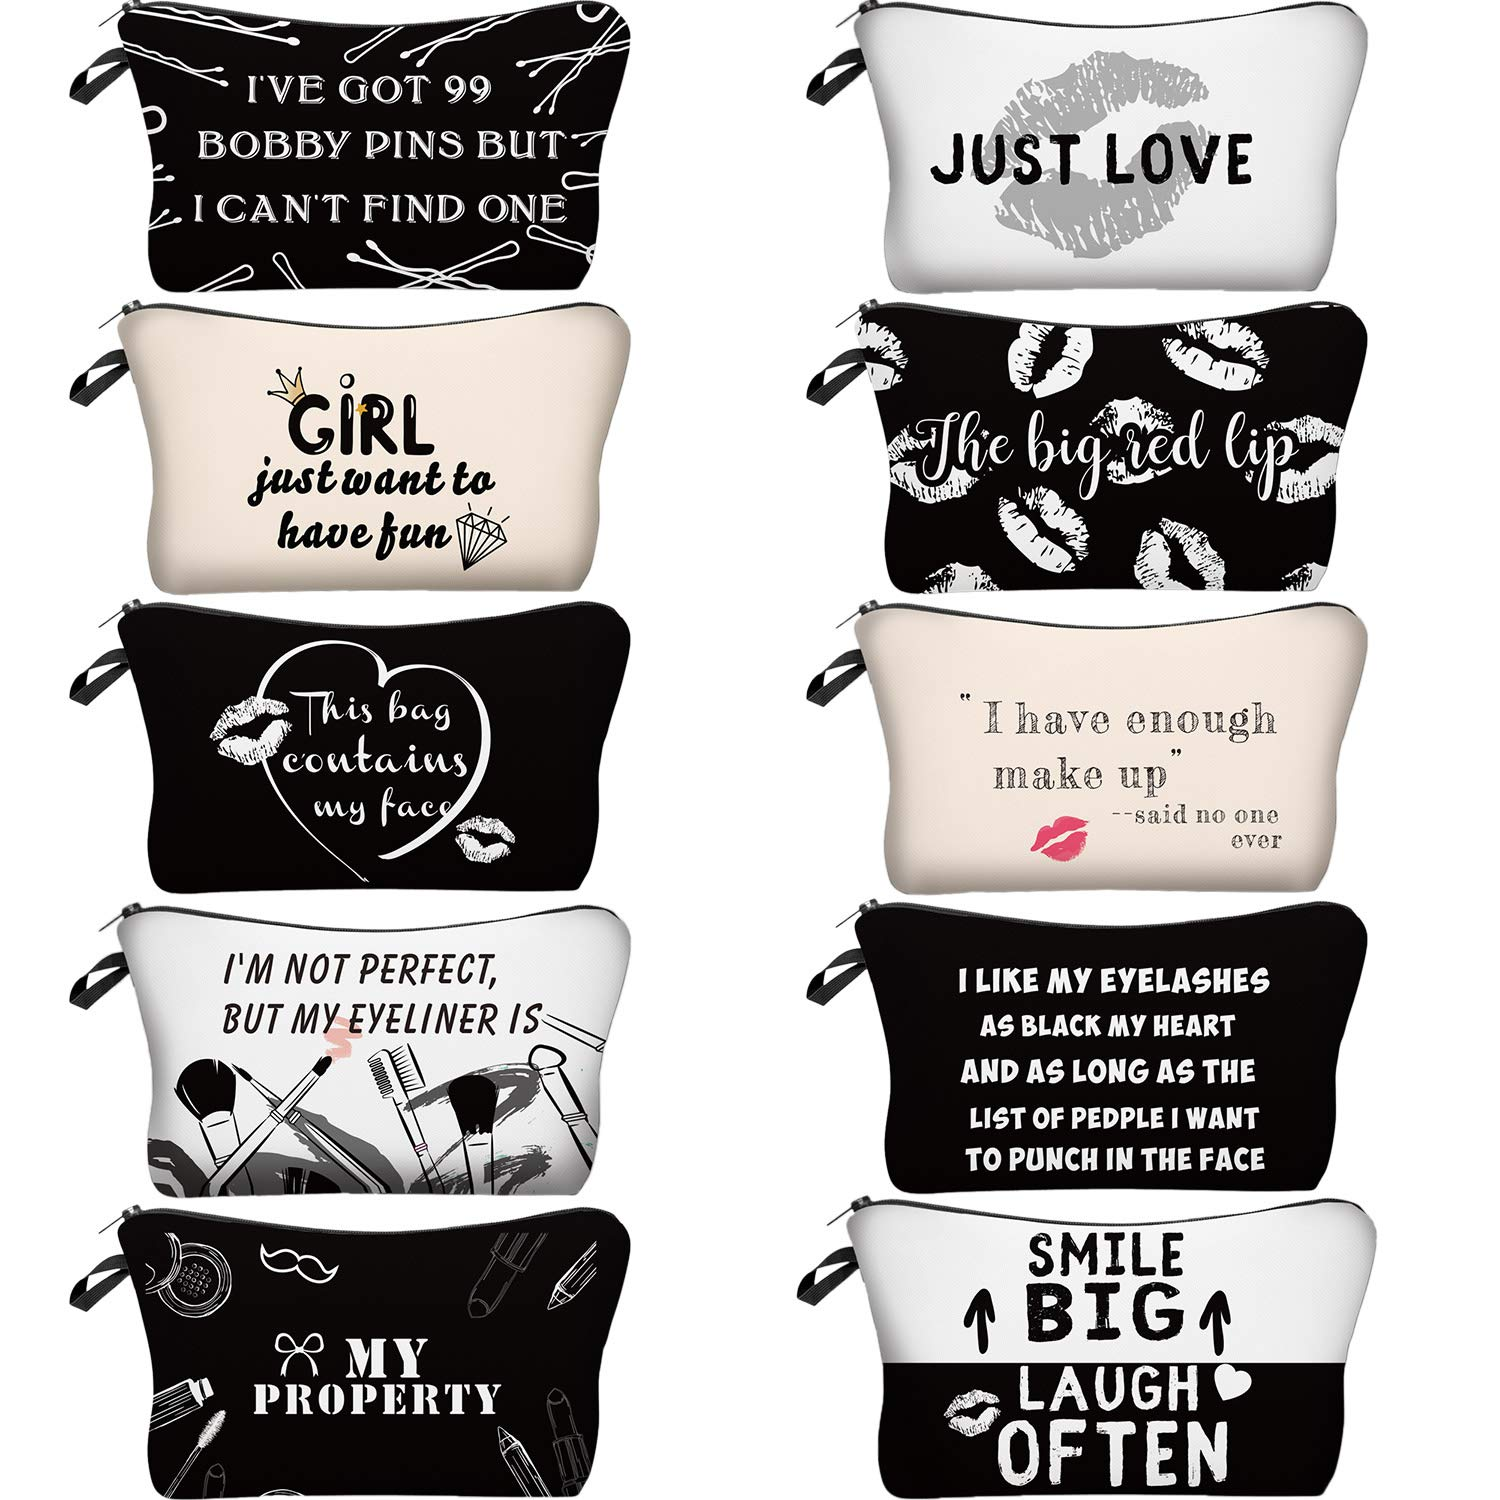 10 Pieces Letters Makeup Bags Cosmetic Pouch Travel Zipper Cosmetic Organizer Toiletry Bag Printing Pencil Bag for Women Girls Supplies Valentine's Day Gift (Black and White Style) 713RwW7tLIL